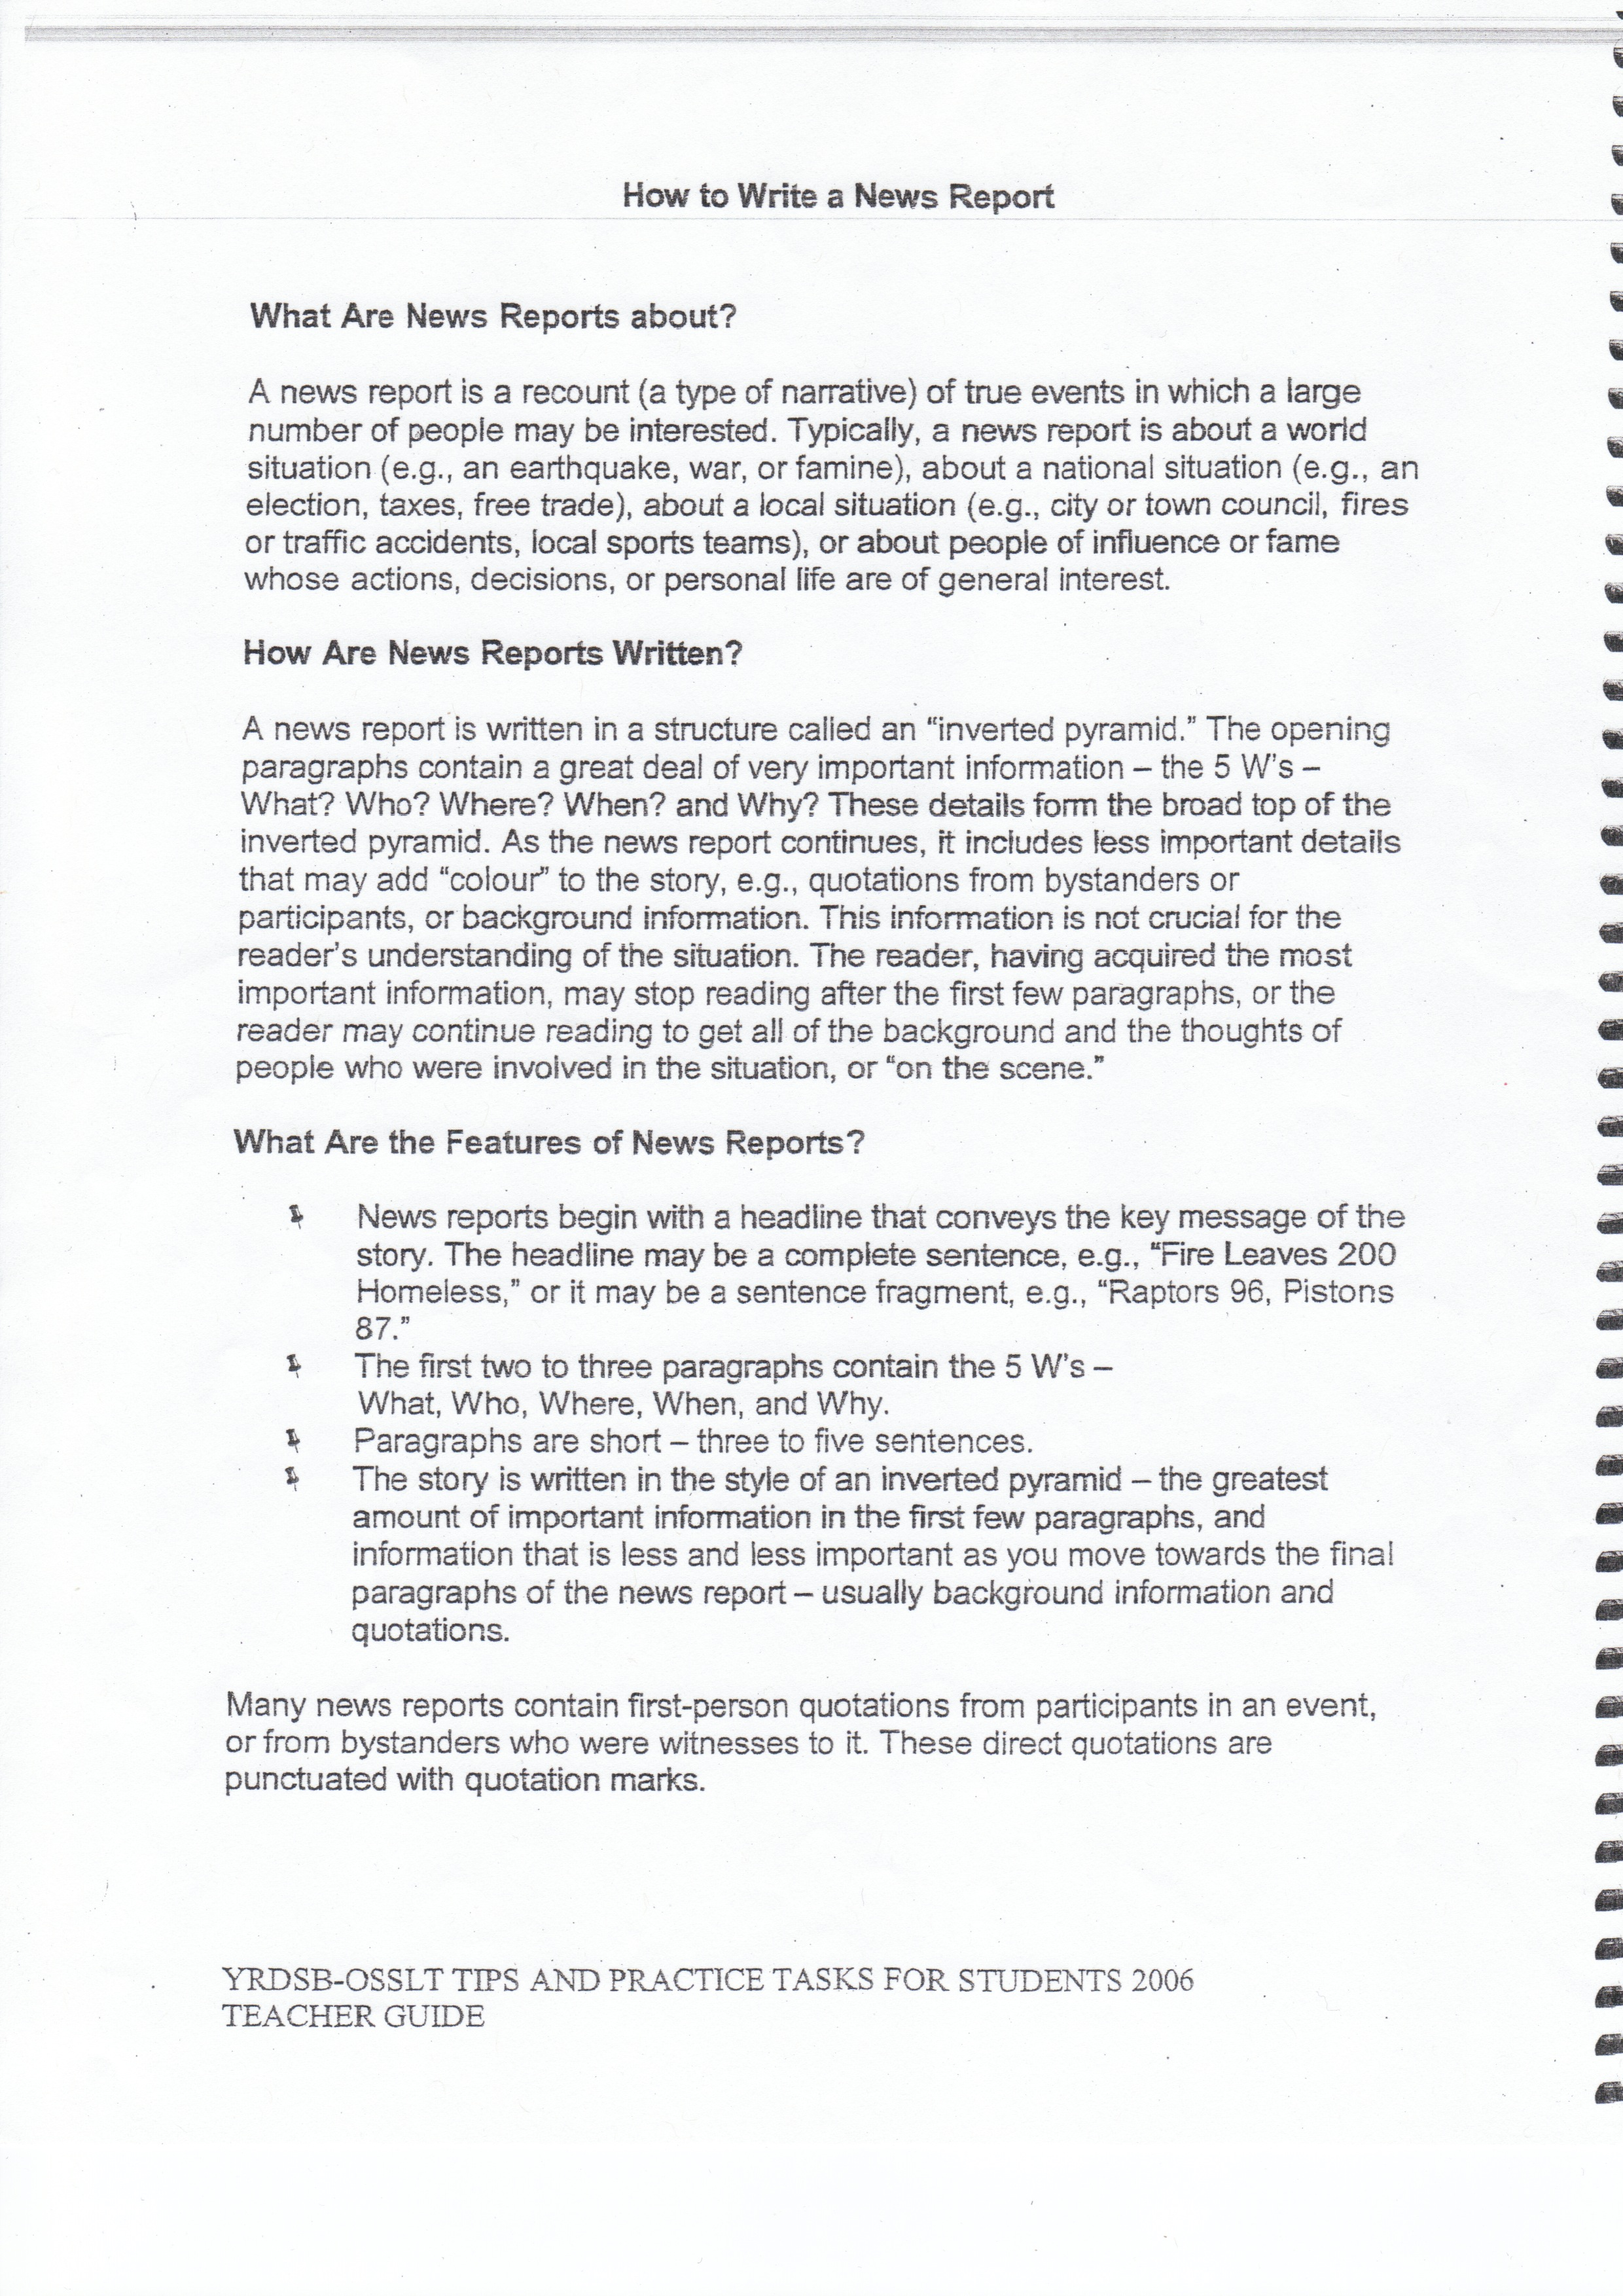 sources essay writing In a persuasive essay in which you cite multiple sources, it's important to strike the right balance and use your sources to support your points.